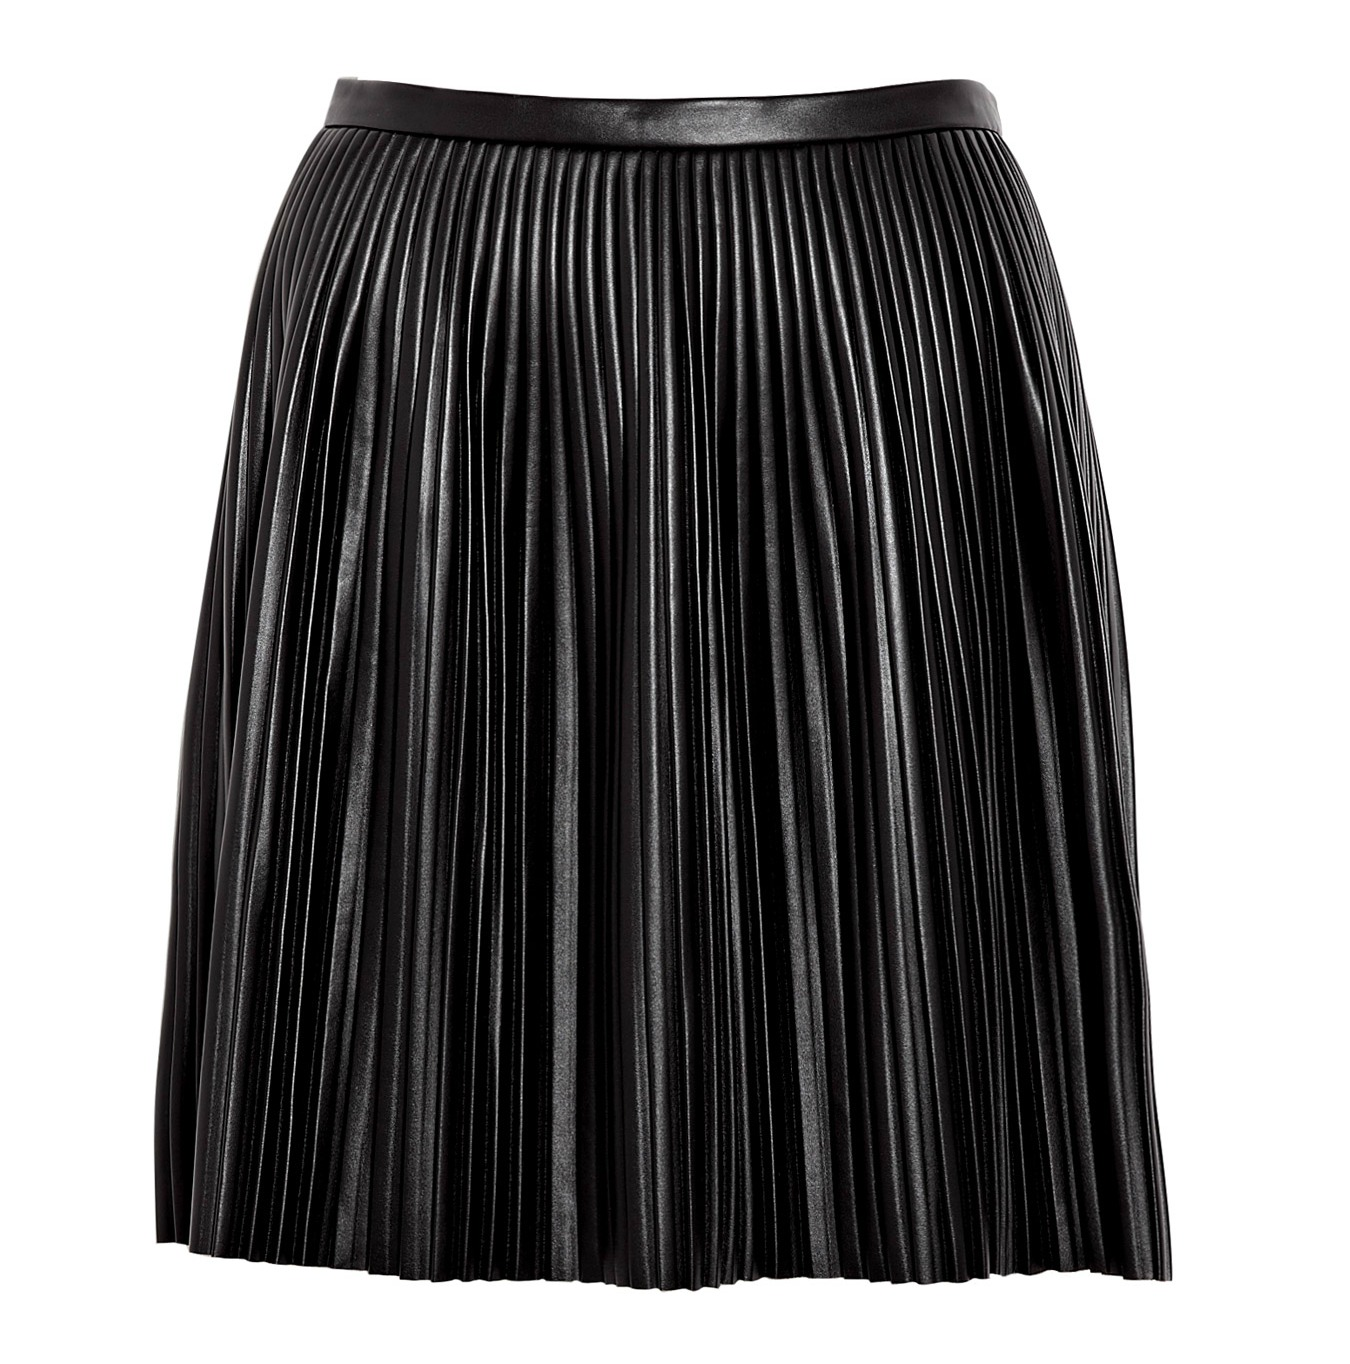 Faux-leather pleated midi skirt Item B size & fit. Sits above waist. 25 1/4